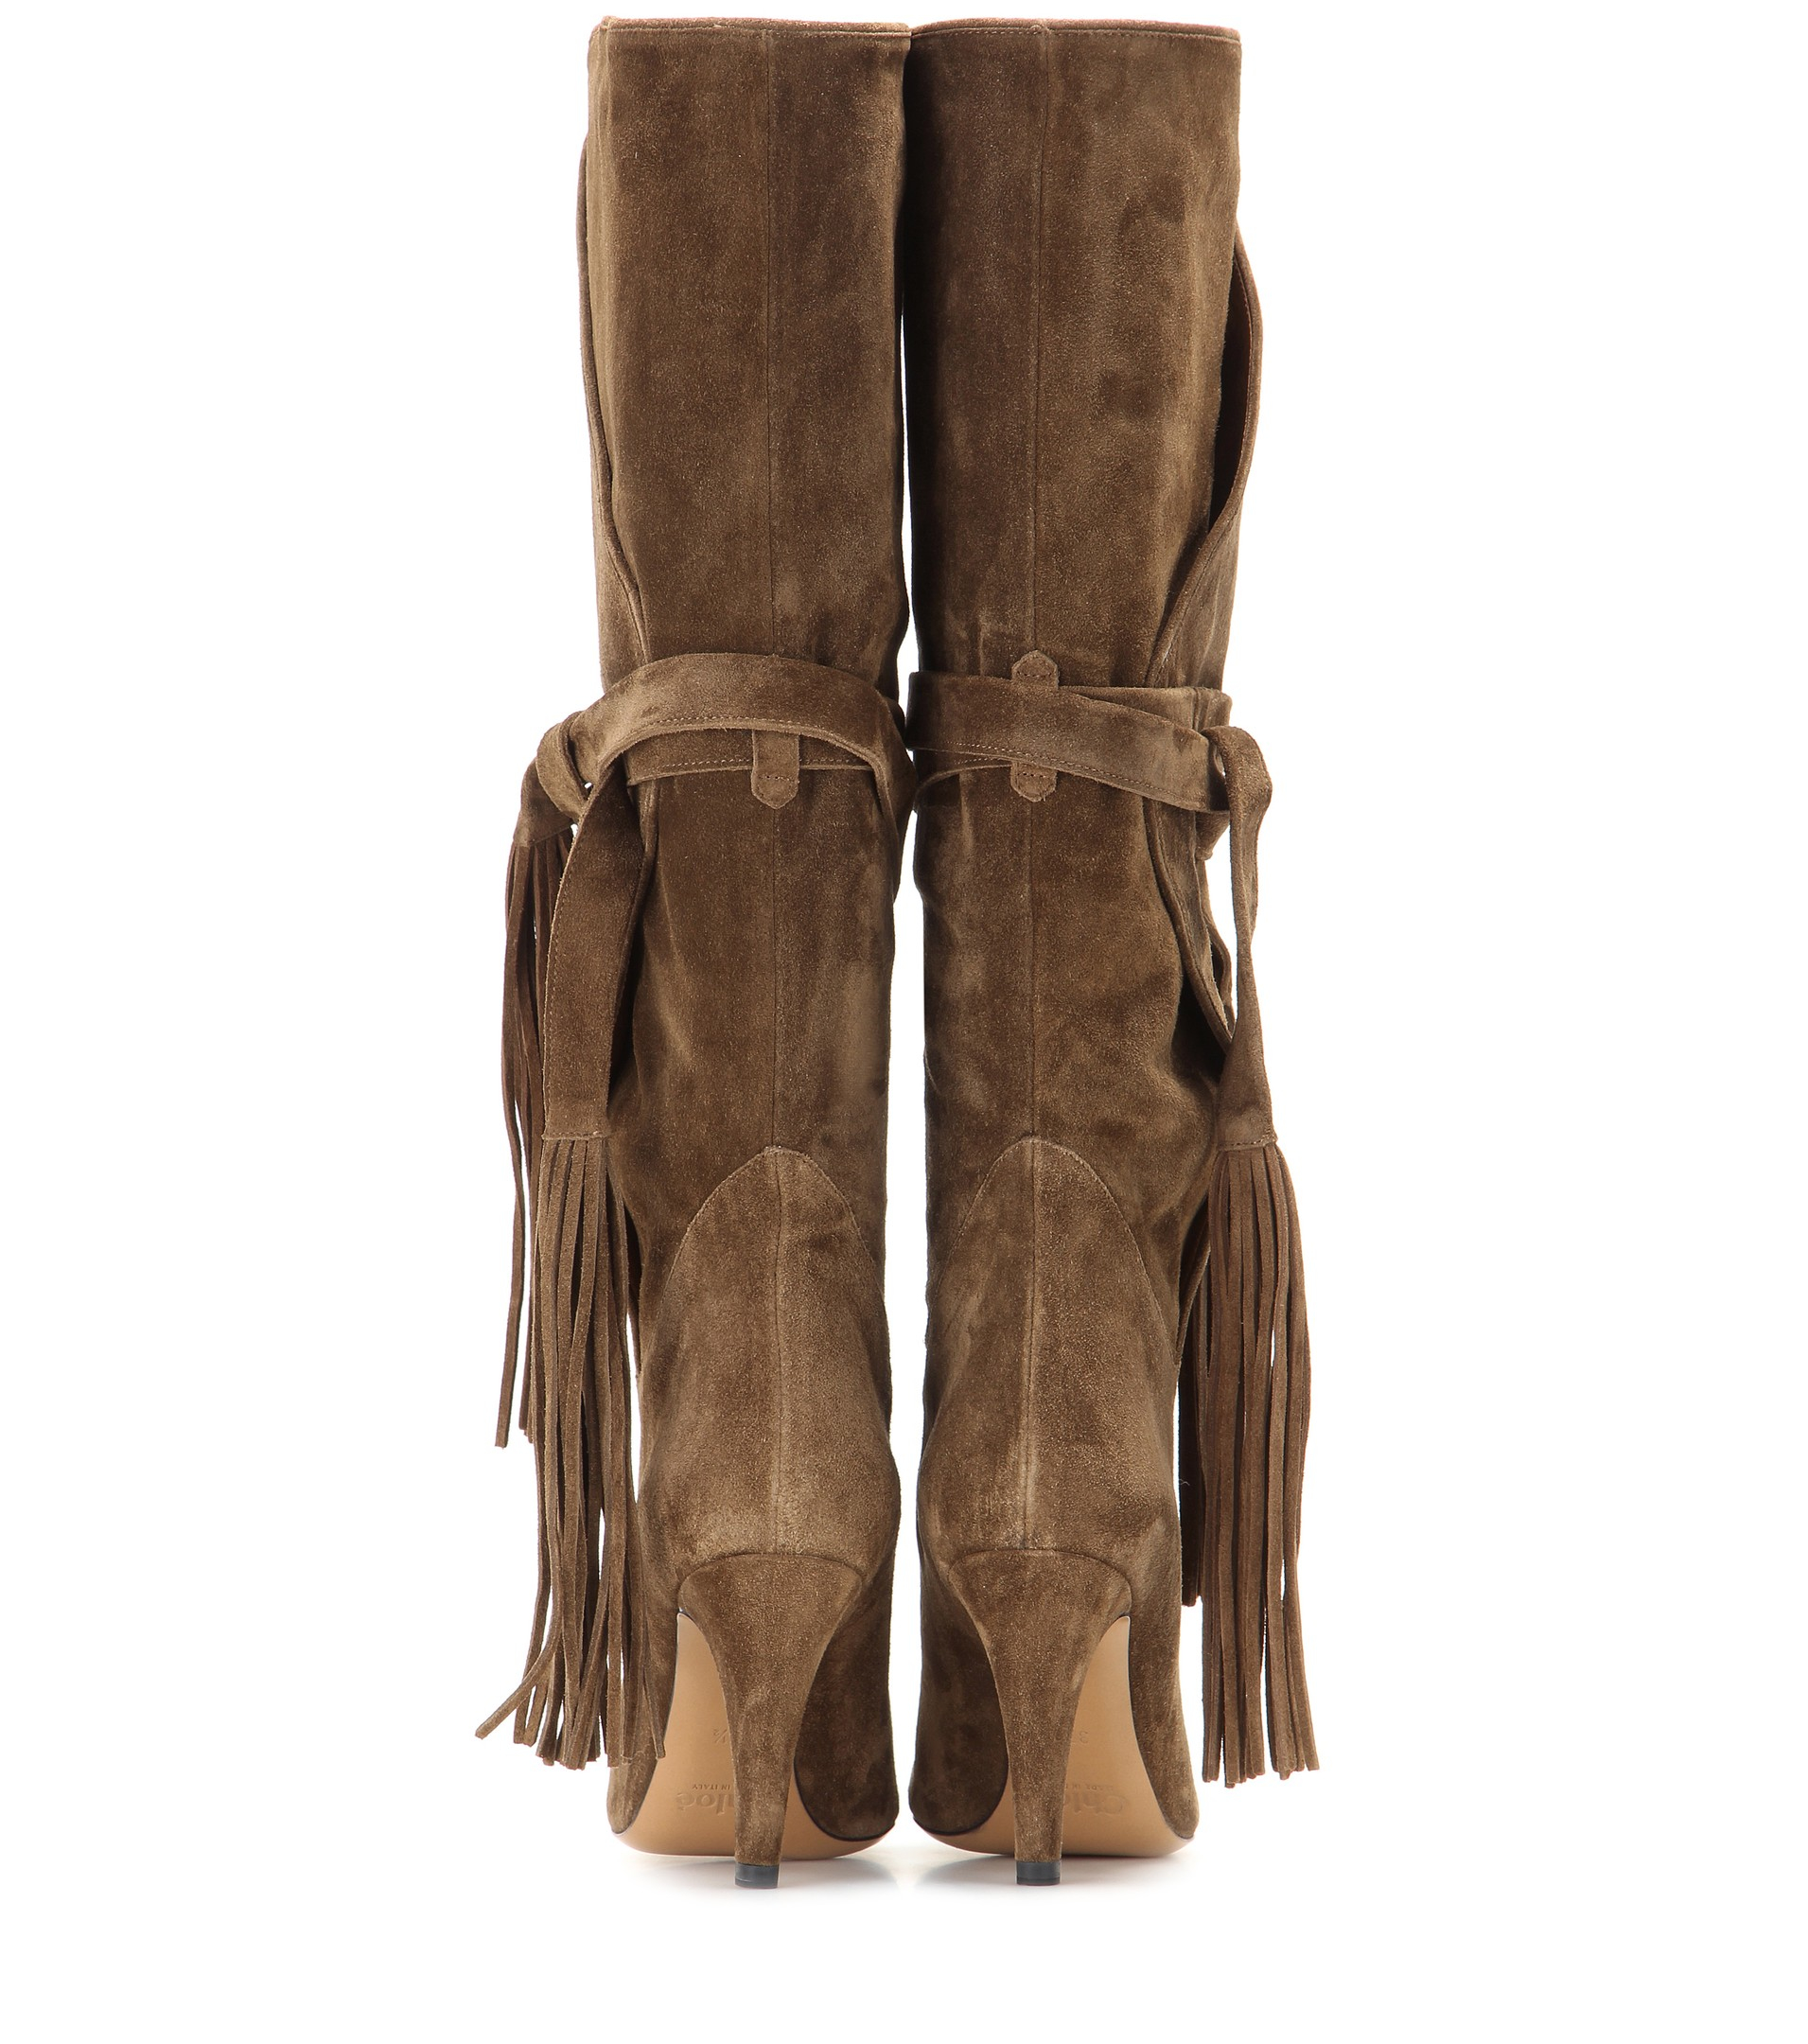 Chloé Tasseled Suede Knee-High Boots in Brown | Lyst